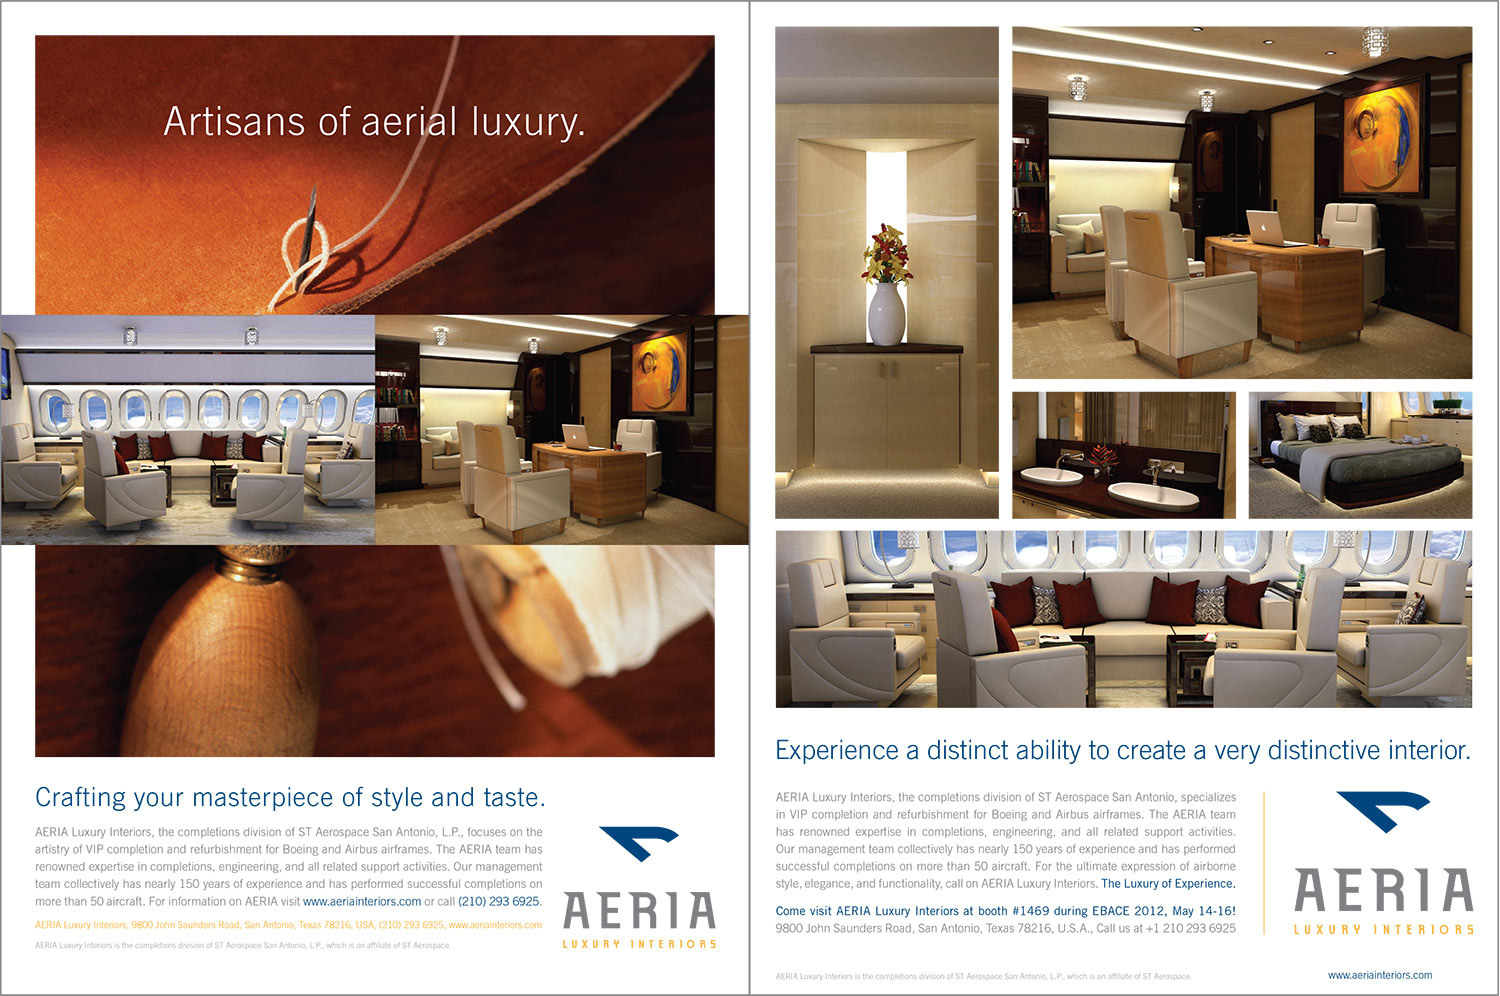 AERIA Luxury Interiors